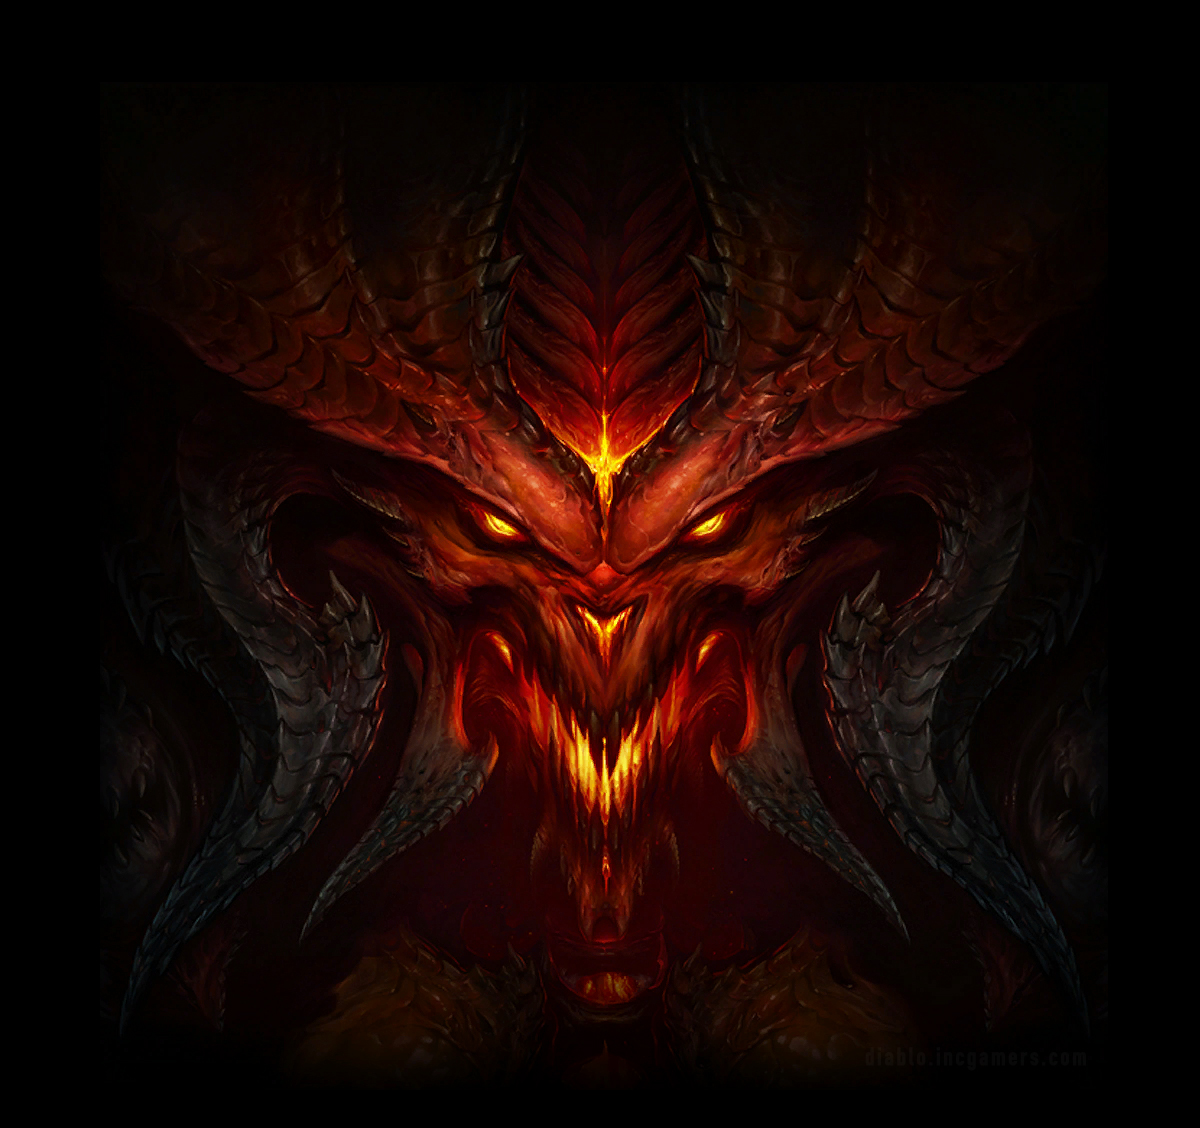 Diablo 3 Wallpaper 1920x1080: Diablo 3: 4th Anniversary